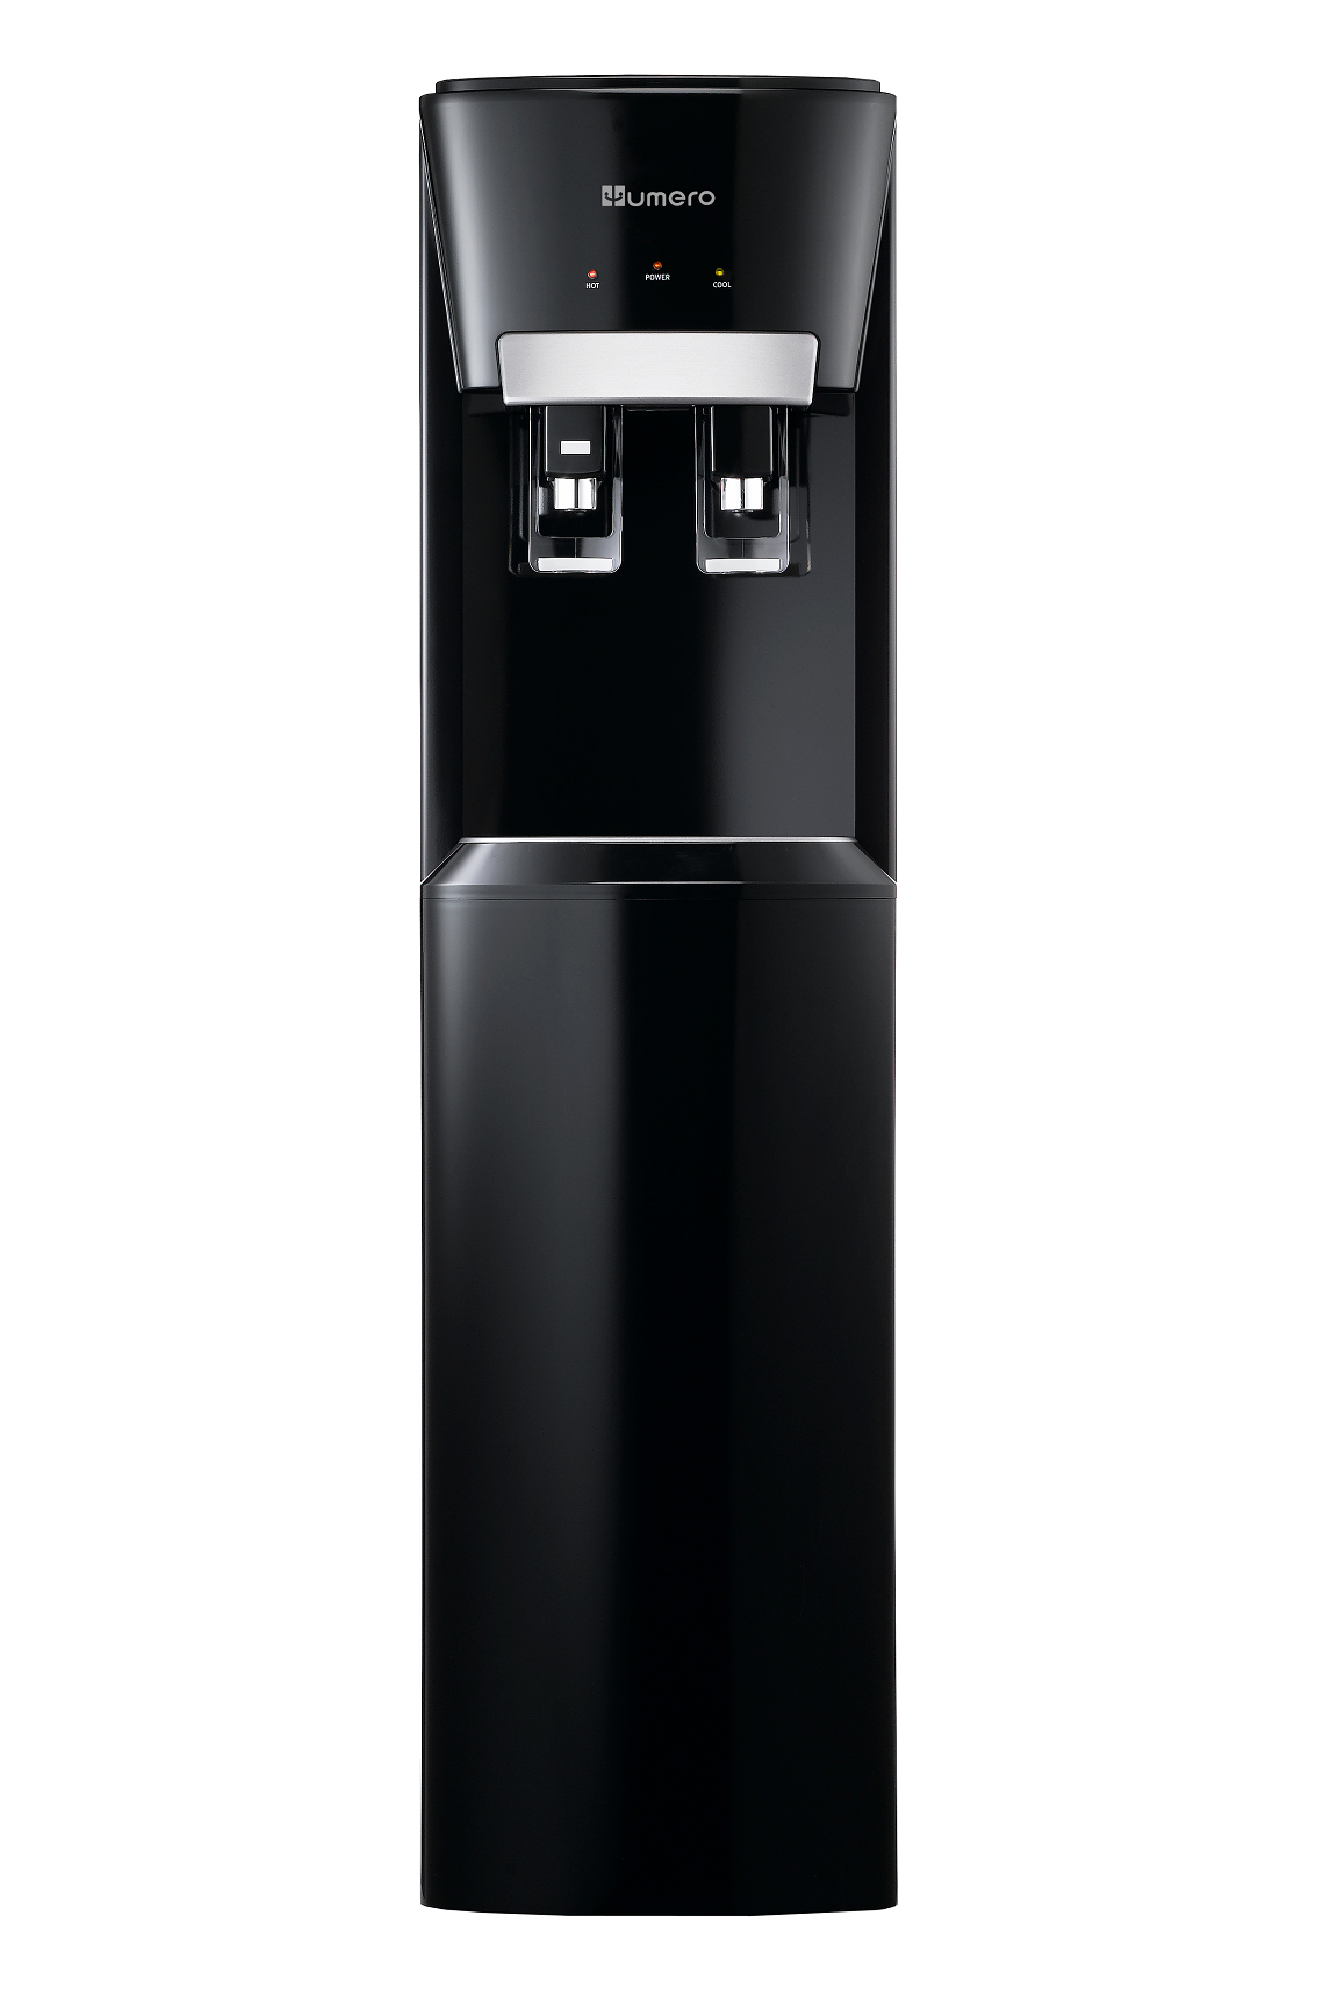 Humero Puri Classic HB-640 Black Hot/Cold Filtered Water Dispenser thumbnail image 1